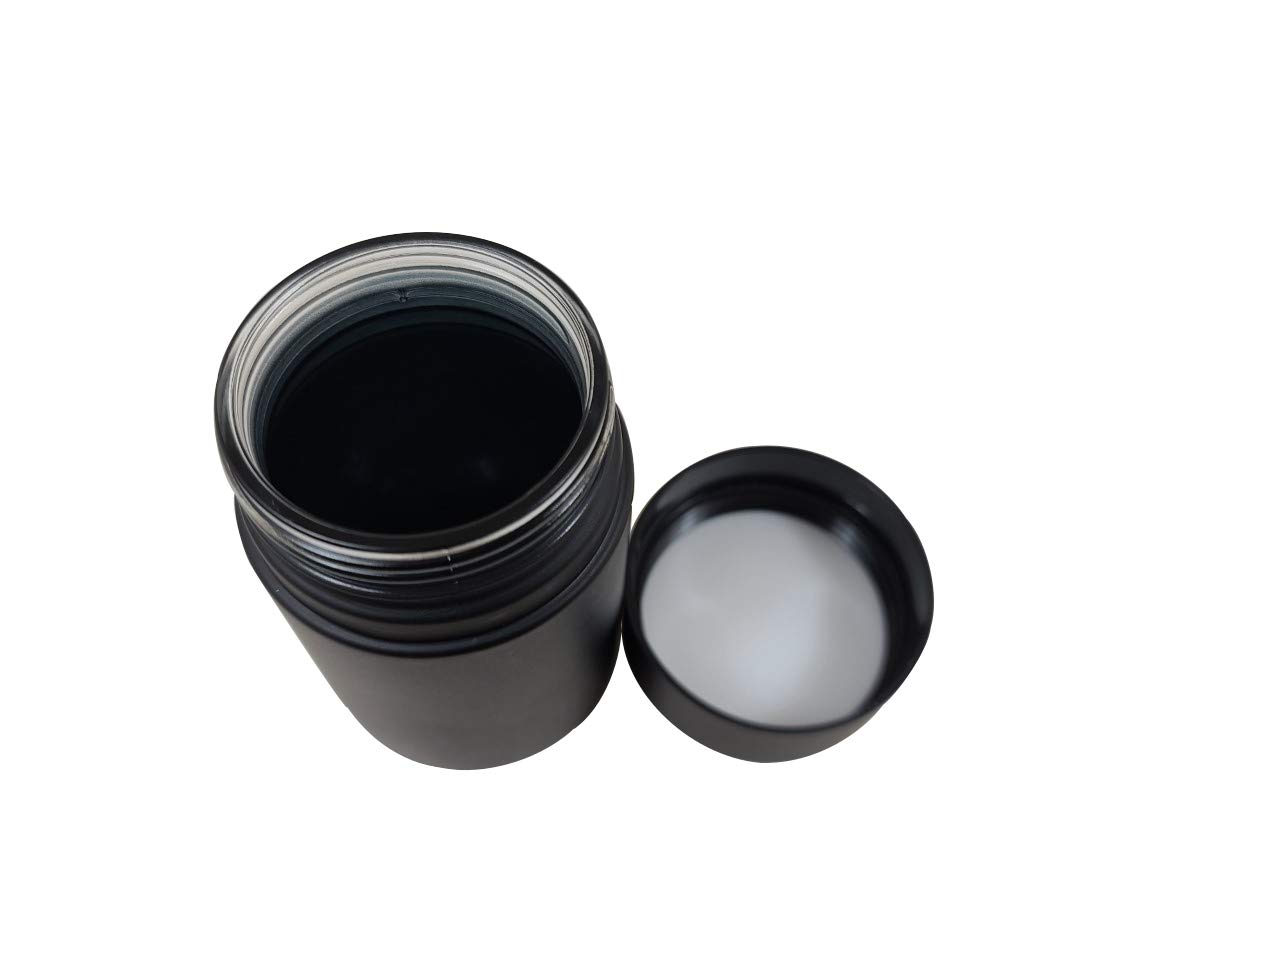 Natura Bona Airtight Max 66% OFF Glass Jars Products for Herbs Food Over item handling Beauty